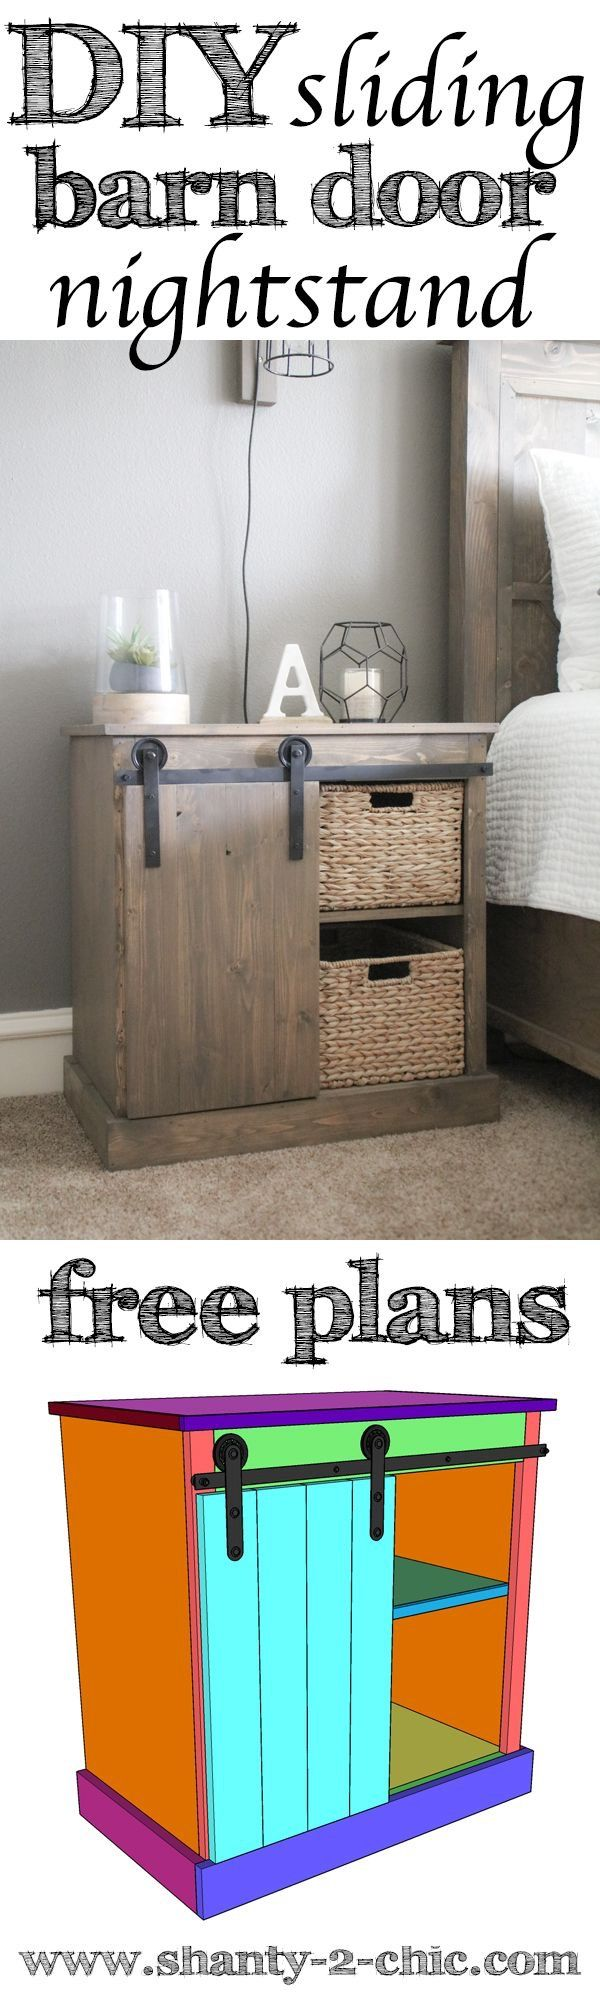 DIY barn door nightstand